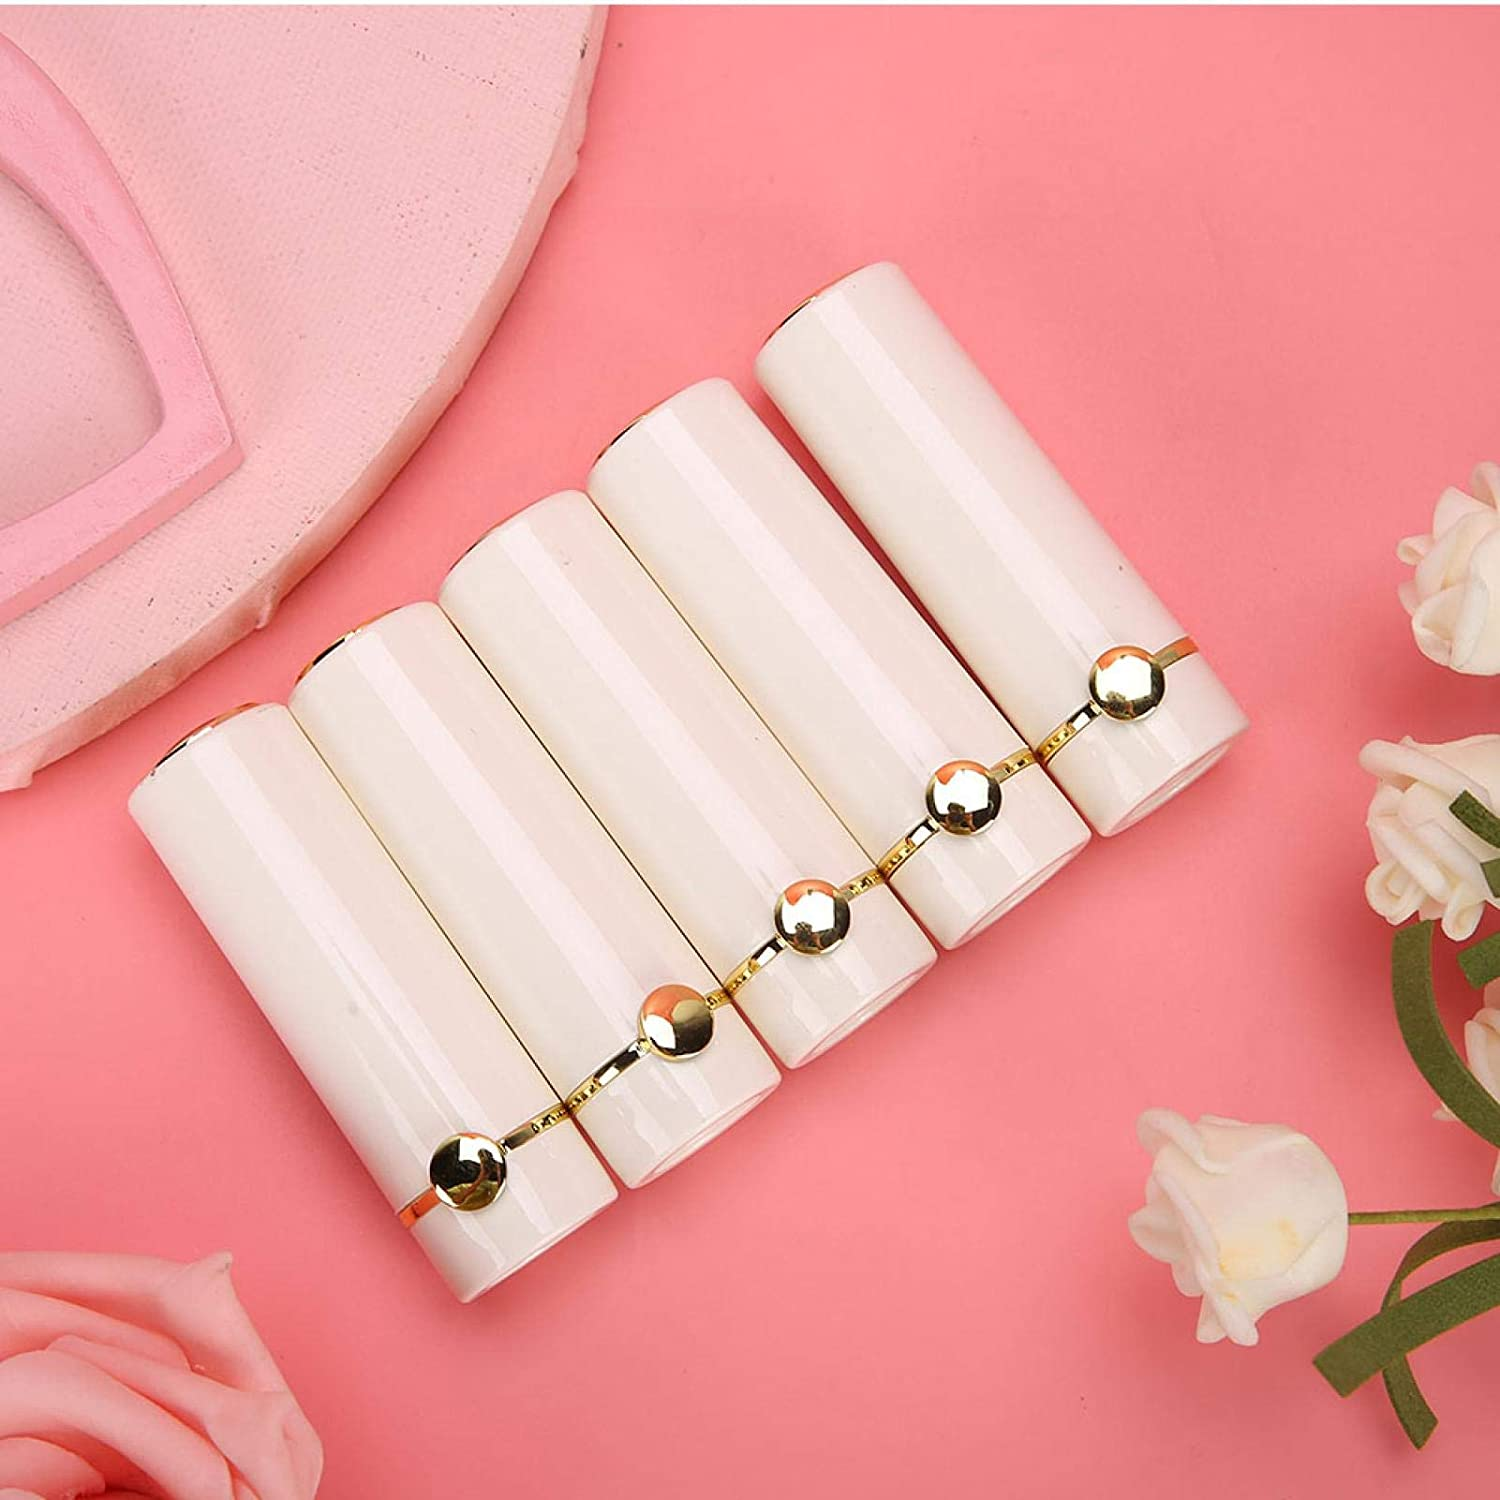 New products, world's highest quality popular! White Cylindrical Lip Balm Tubes Rouge Storage Cosmet Be super welcome Bottle